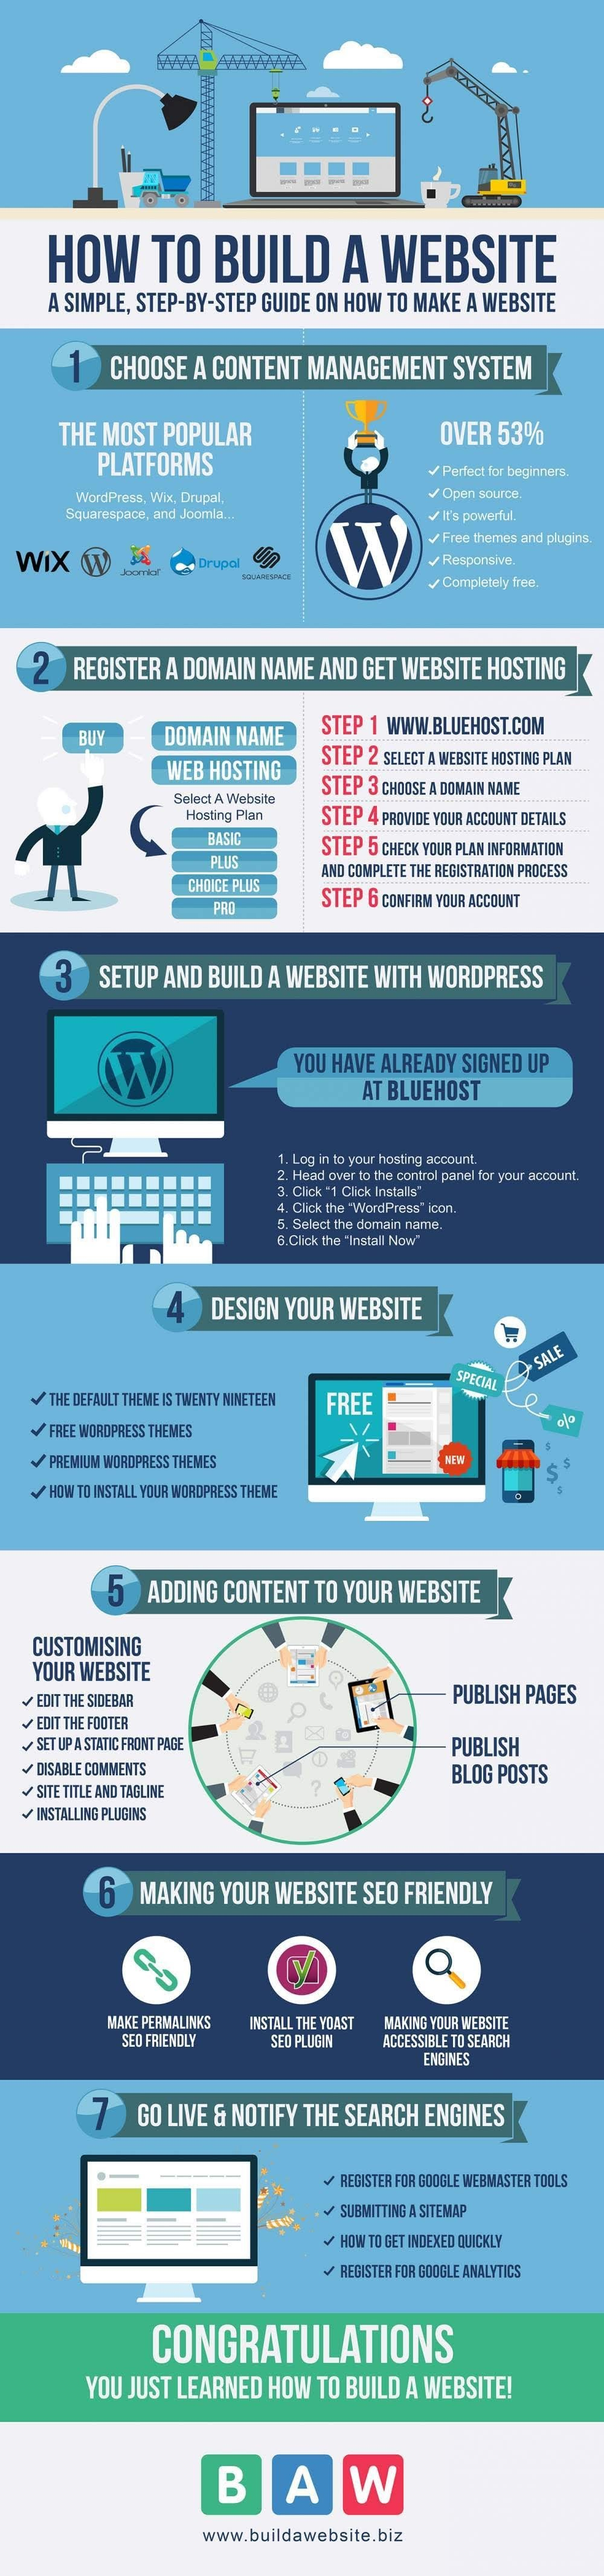 How To Build A Website #infographic